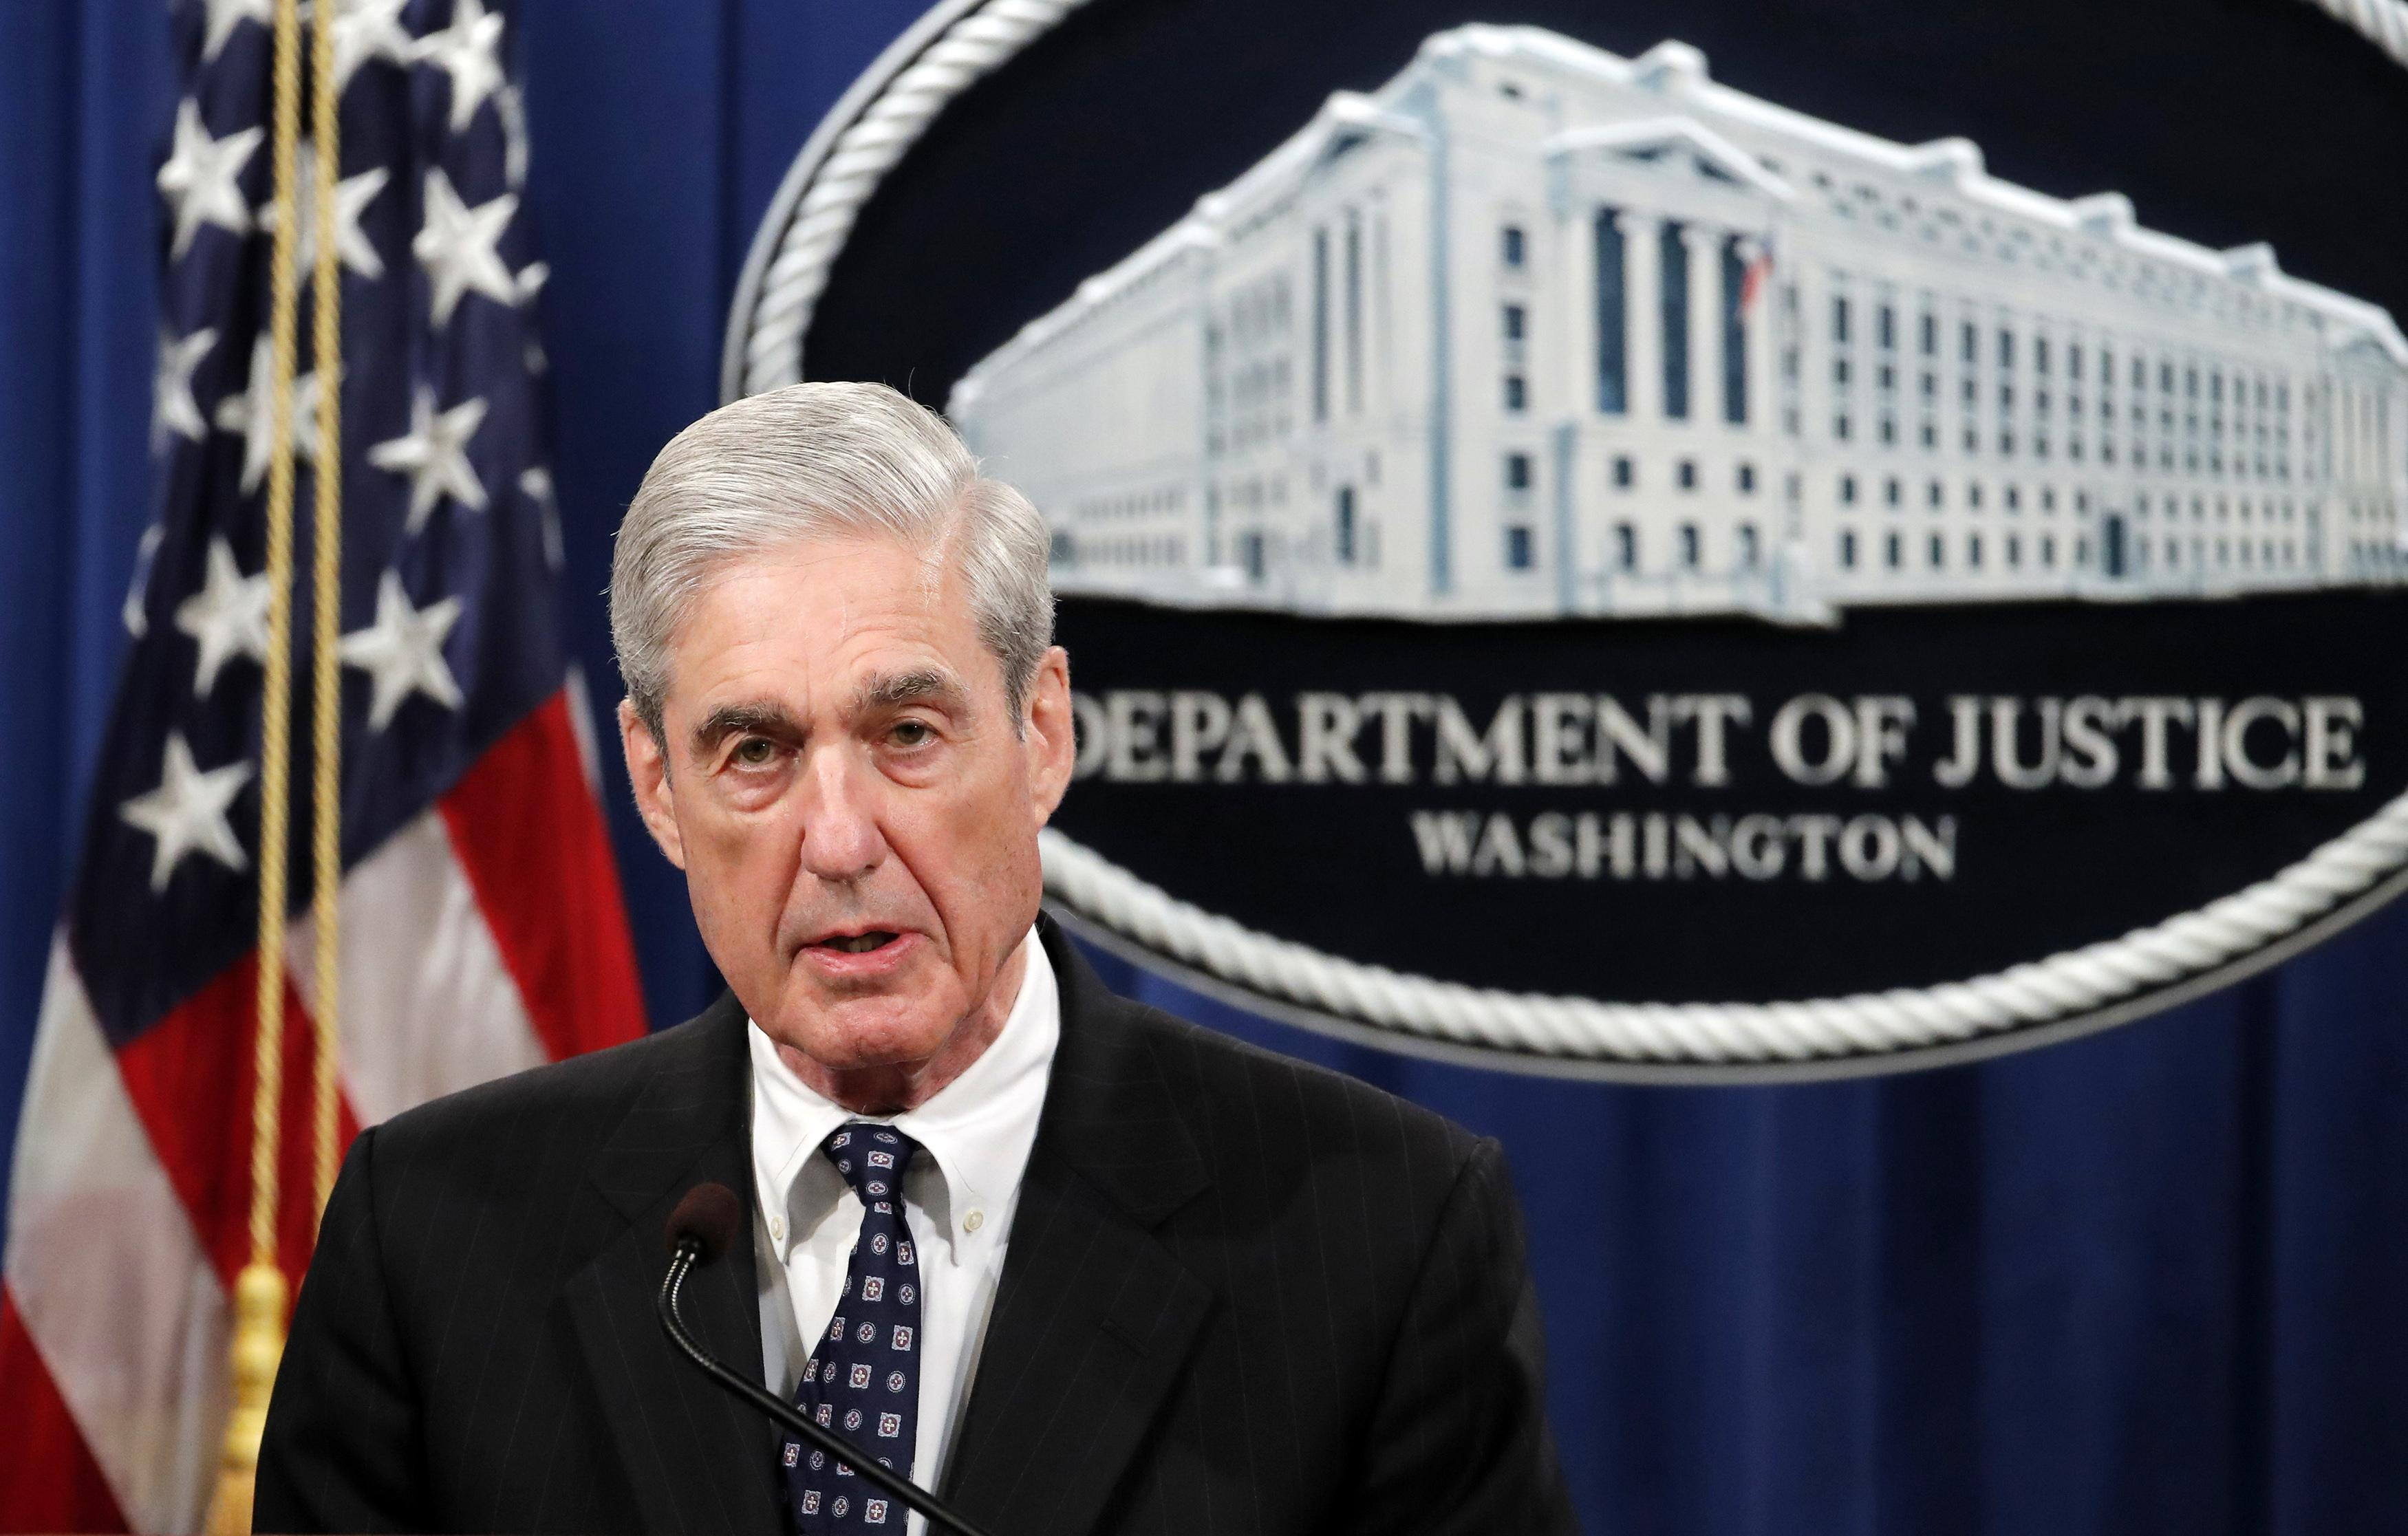 Trump rips Mueller prior to House hearings; 'Ridiculous Witch Hunt'